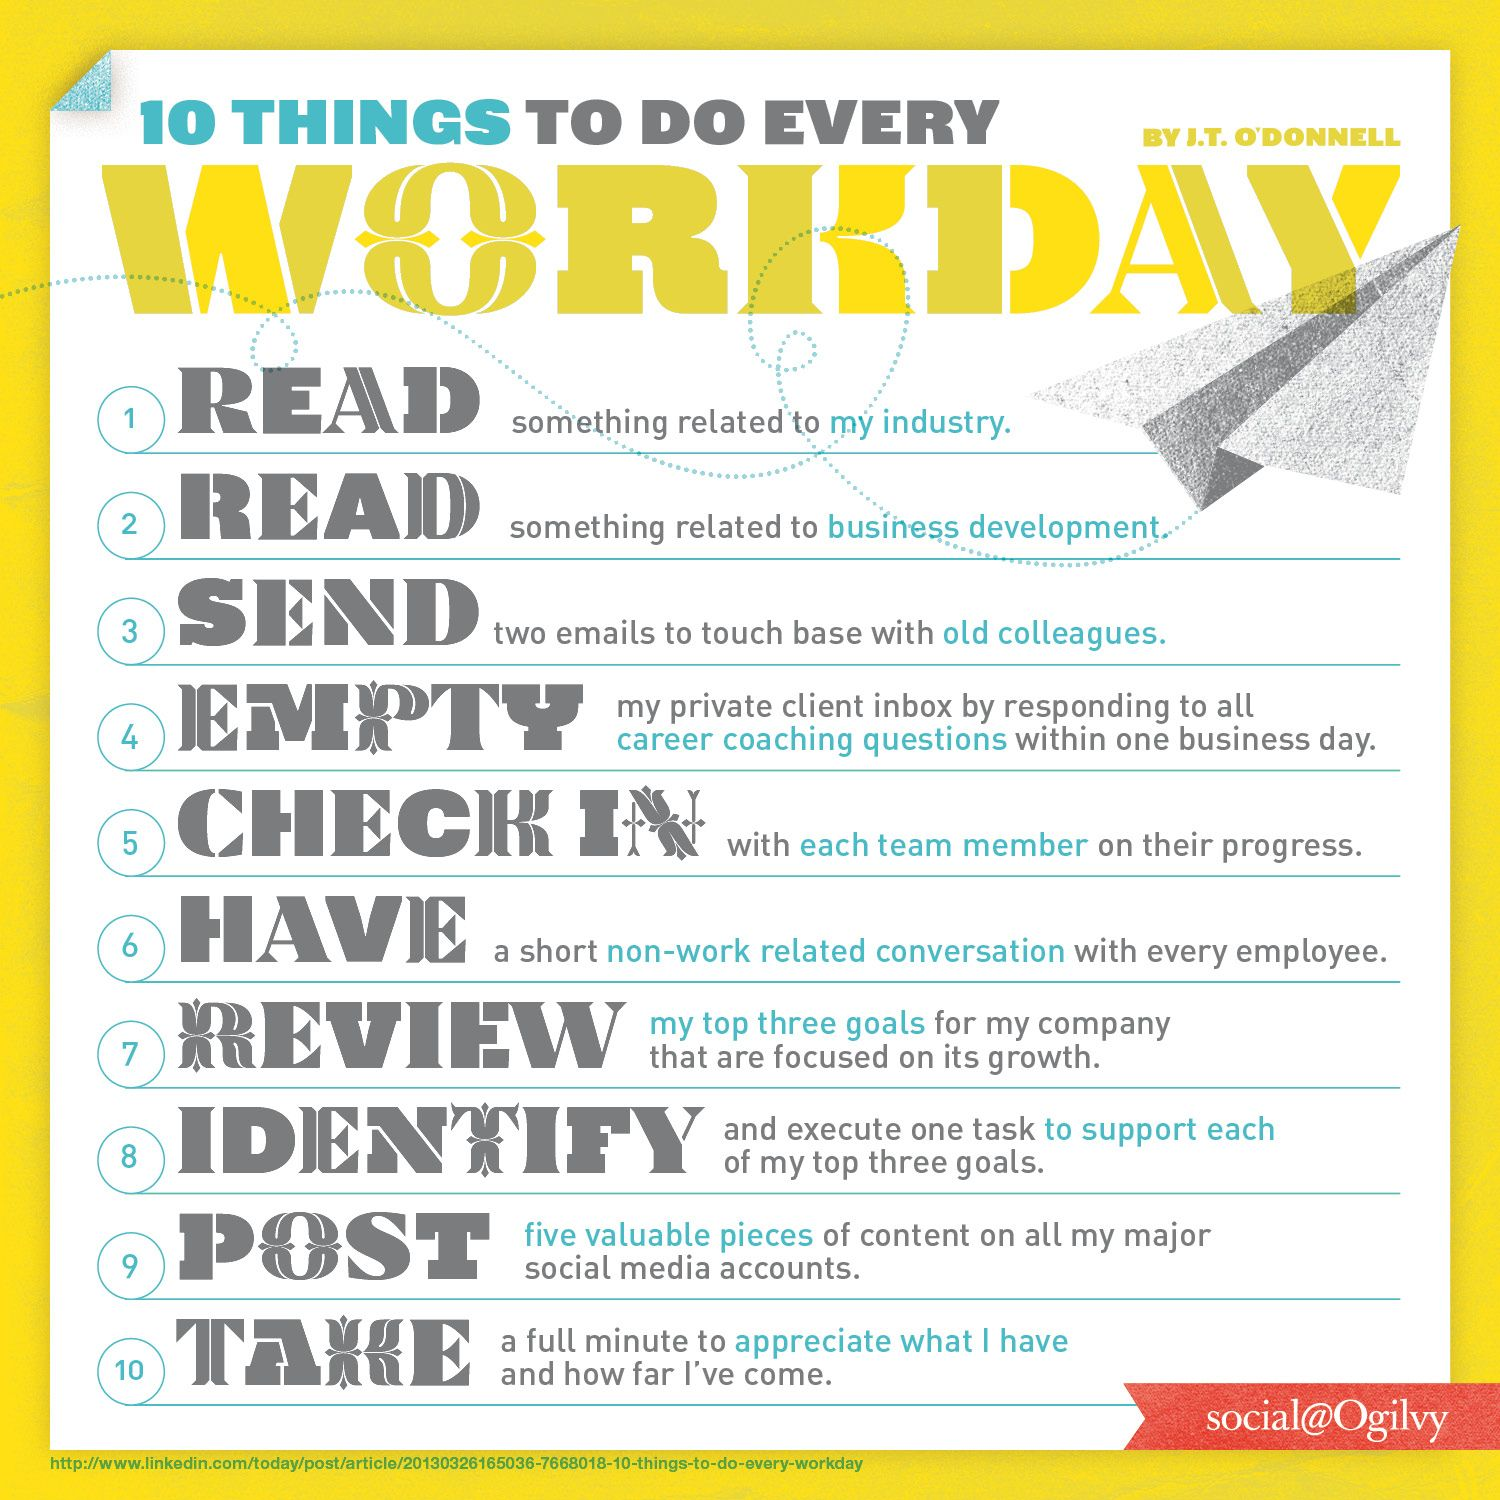 10 Things To Do Every Workday... A great list by J.T. O